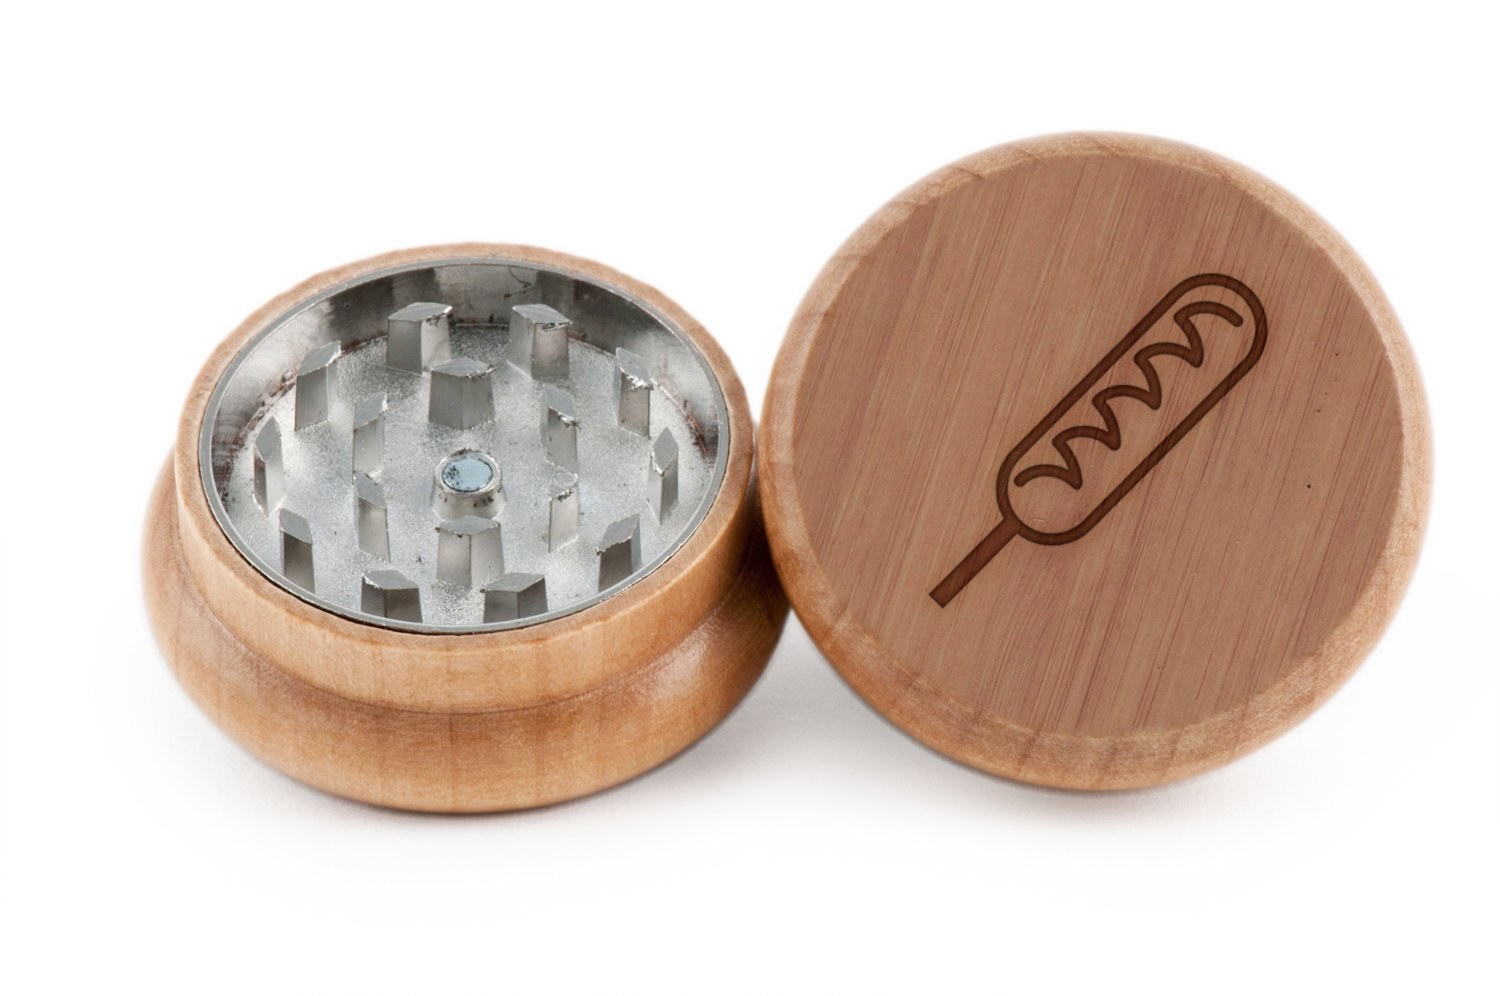 Corndog Herb and Spice Grinder - 2 Piece Wood Grinder with Laser Etched Designs - Made with Oak (2 Inches) GrindCandy